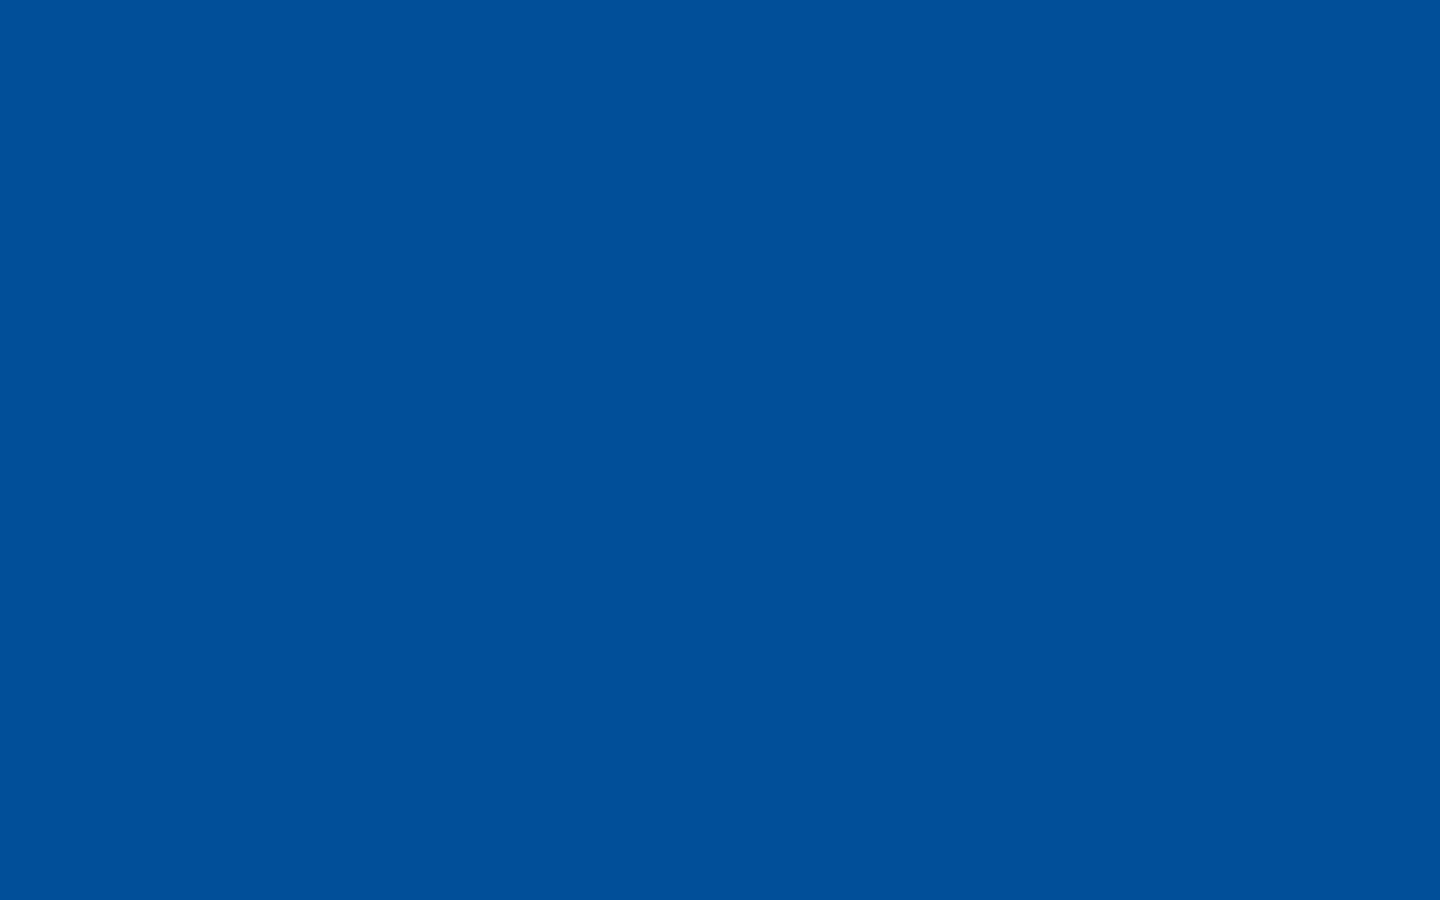 1440x900 USAFA Blue Solid Color Background